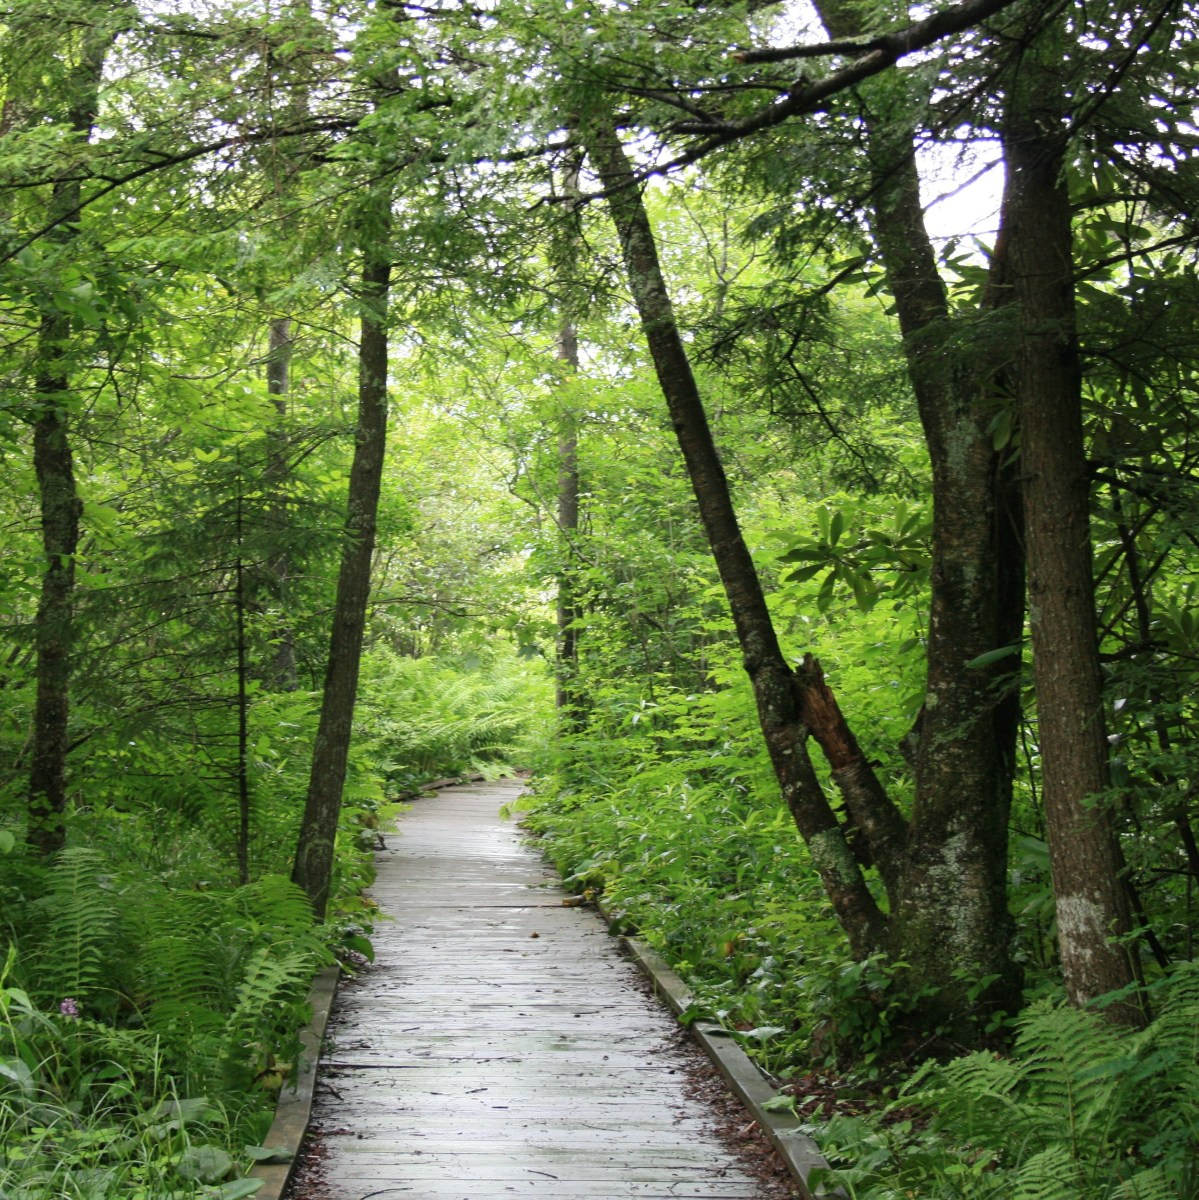 A view from the boardwalk on the Cranberry Glades Botanical Trail.